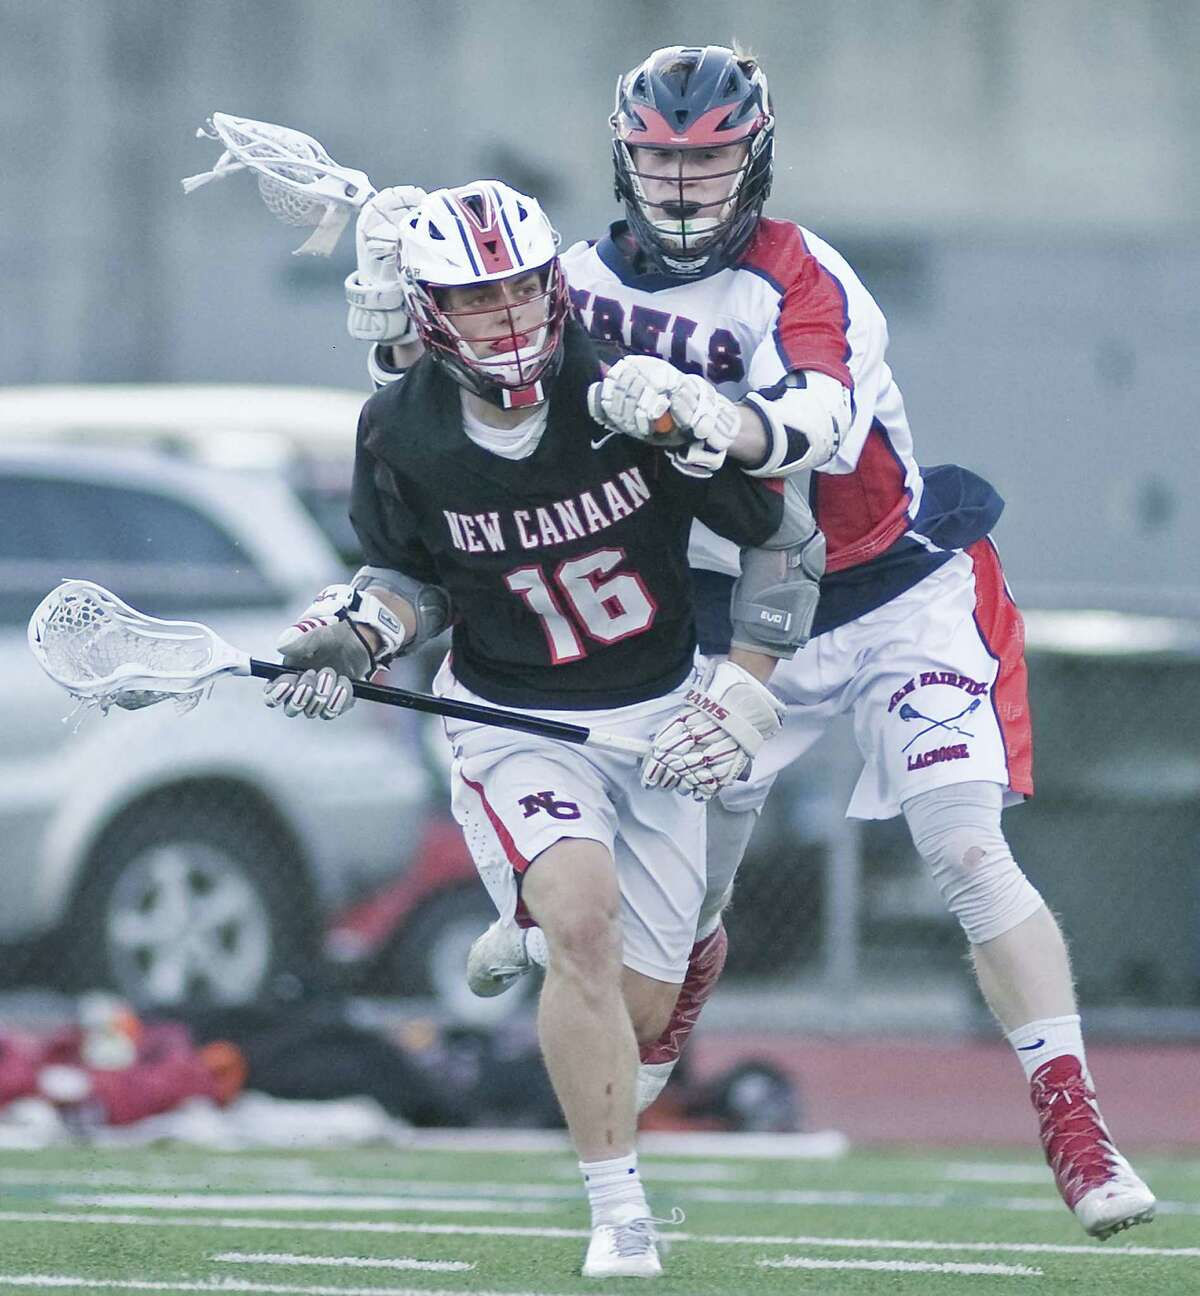 NEW CANAAN 21, NEW FAIRFIELD 6: New Canaan's Graham Braden takes a hit from New Fairfield's Colin Ford in the Class M boys lacrosse semifinal Wednesday at Brien McMahon High School in Norwalk